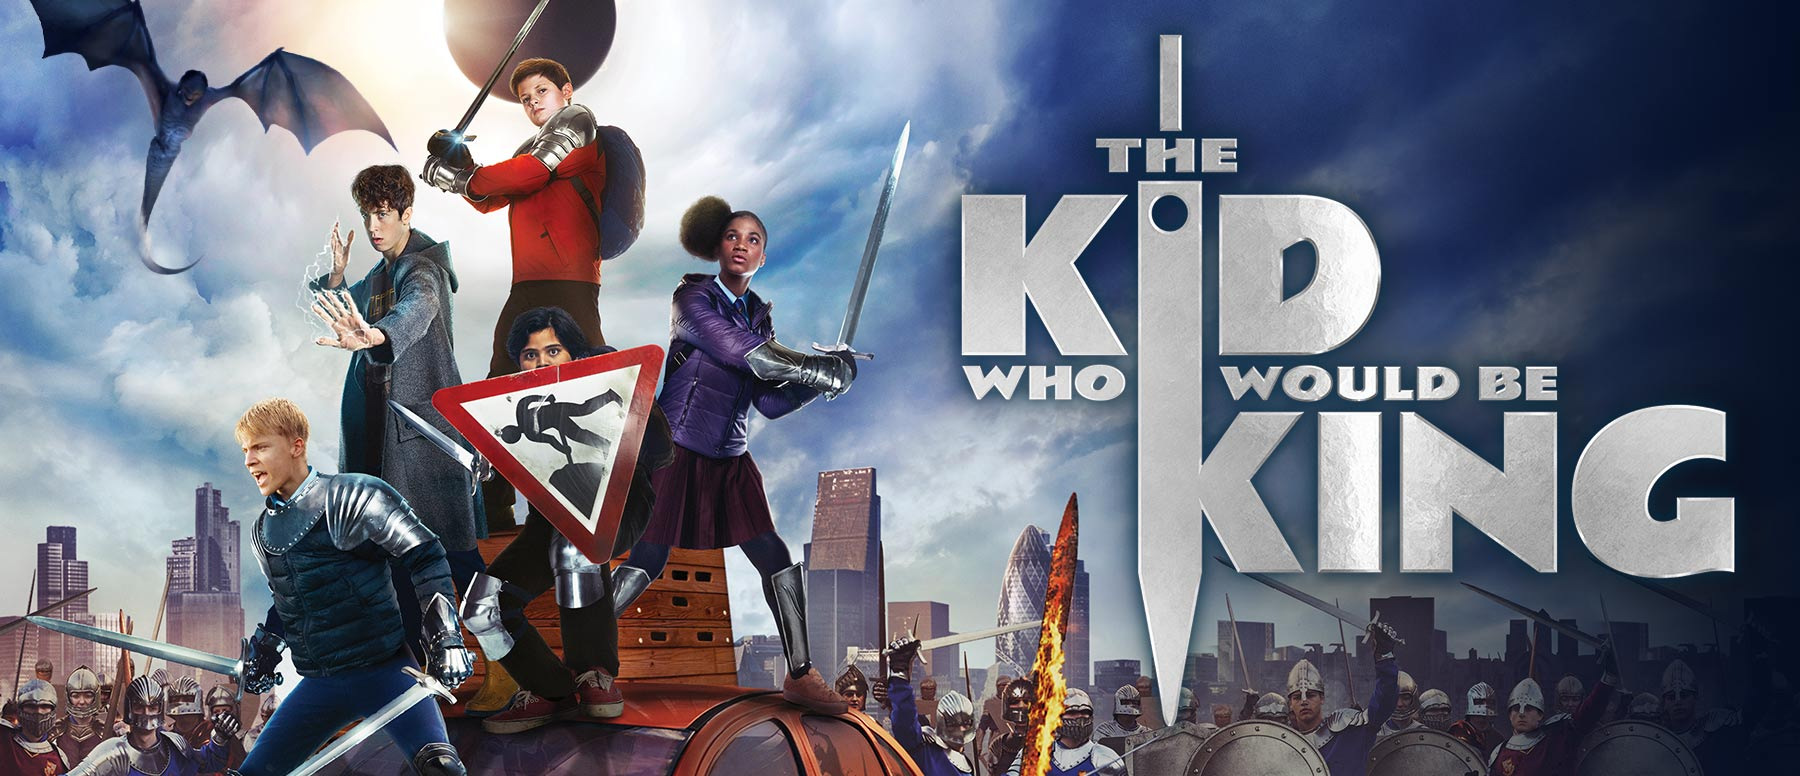 [Movie Review] The Kid Who Would Be King - Wholesome and Entertaining, but Tanked at the Box Office? - Alvinology